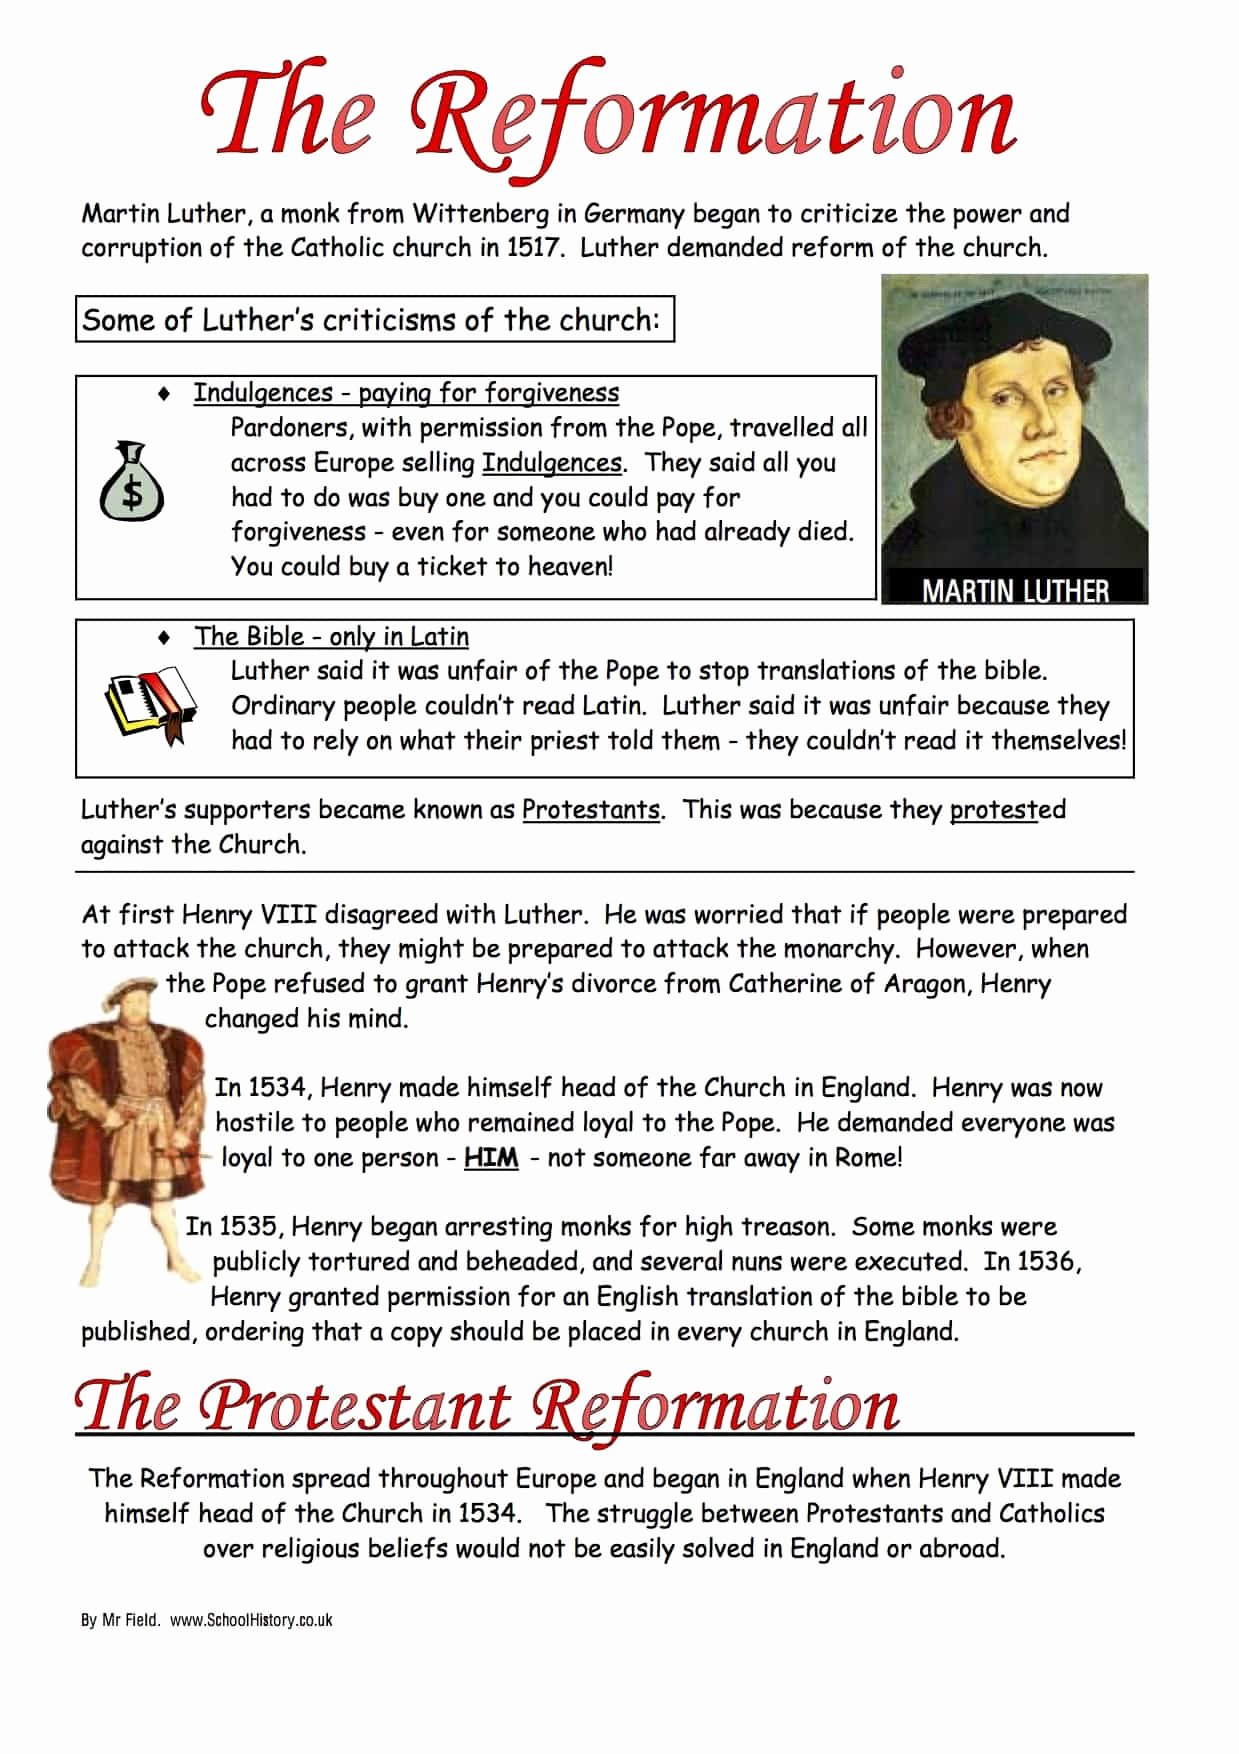 Protestant Reformation Worksheet Answers Luxury the Protestant Reformation Worksheet